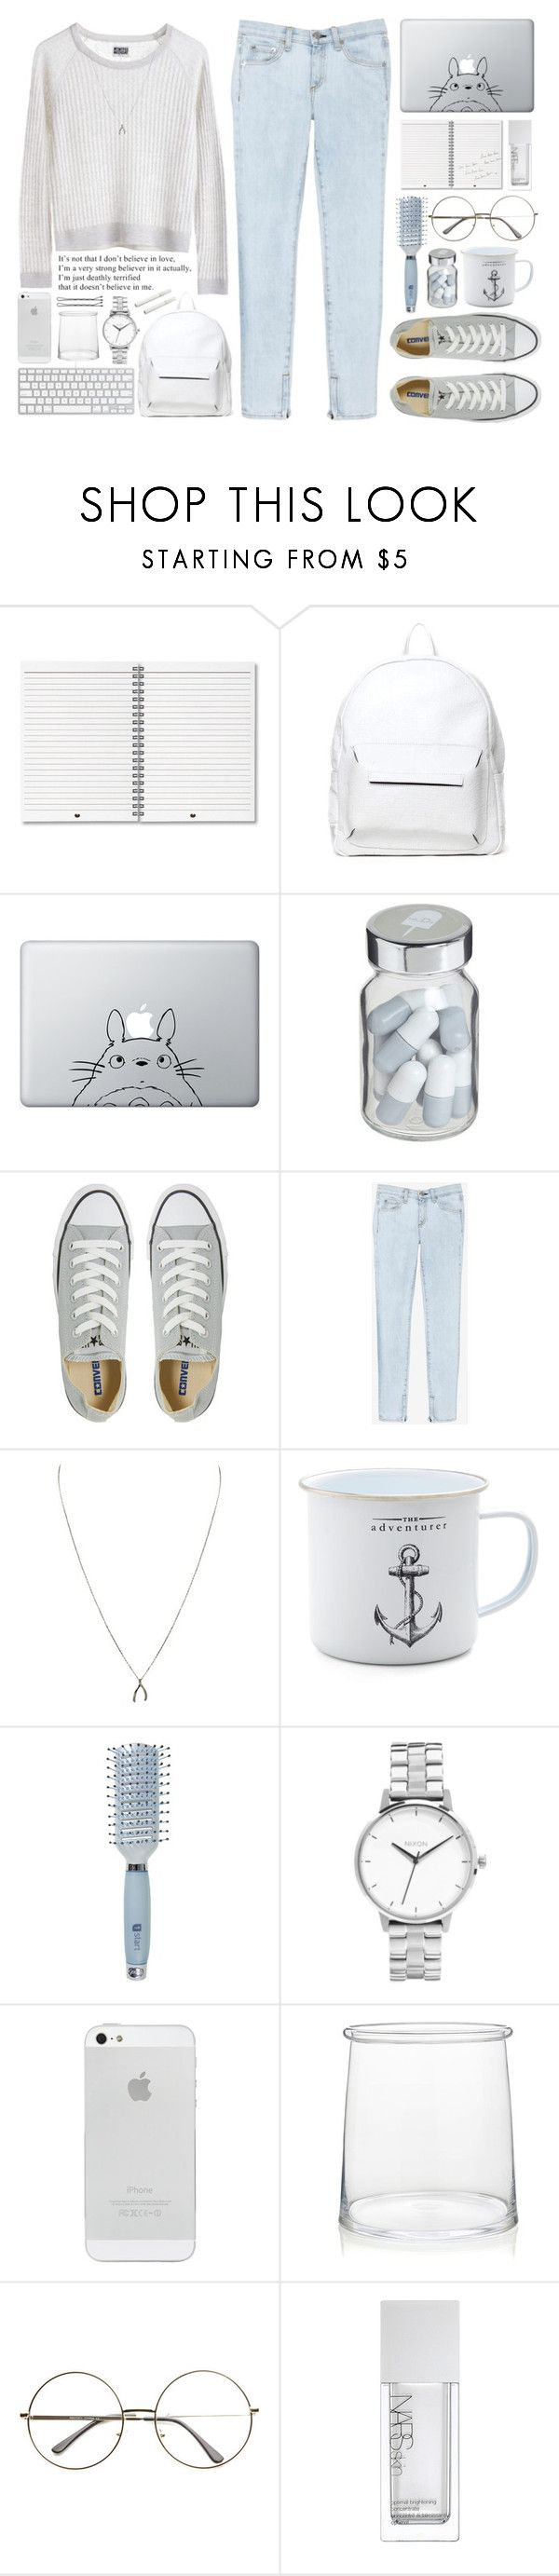 """""""Right here right now"""" by tania-maria ❤ liked on Polyvore featuring Asya Malbershtein, Humör, Vita, MTWTFSS Weekday, Converse, rag & bone/JEAN, Ziba, Goody, Nixon and Crate and Barrel"""